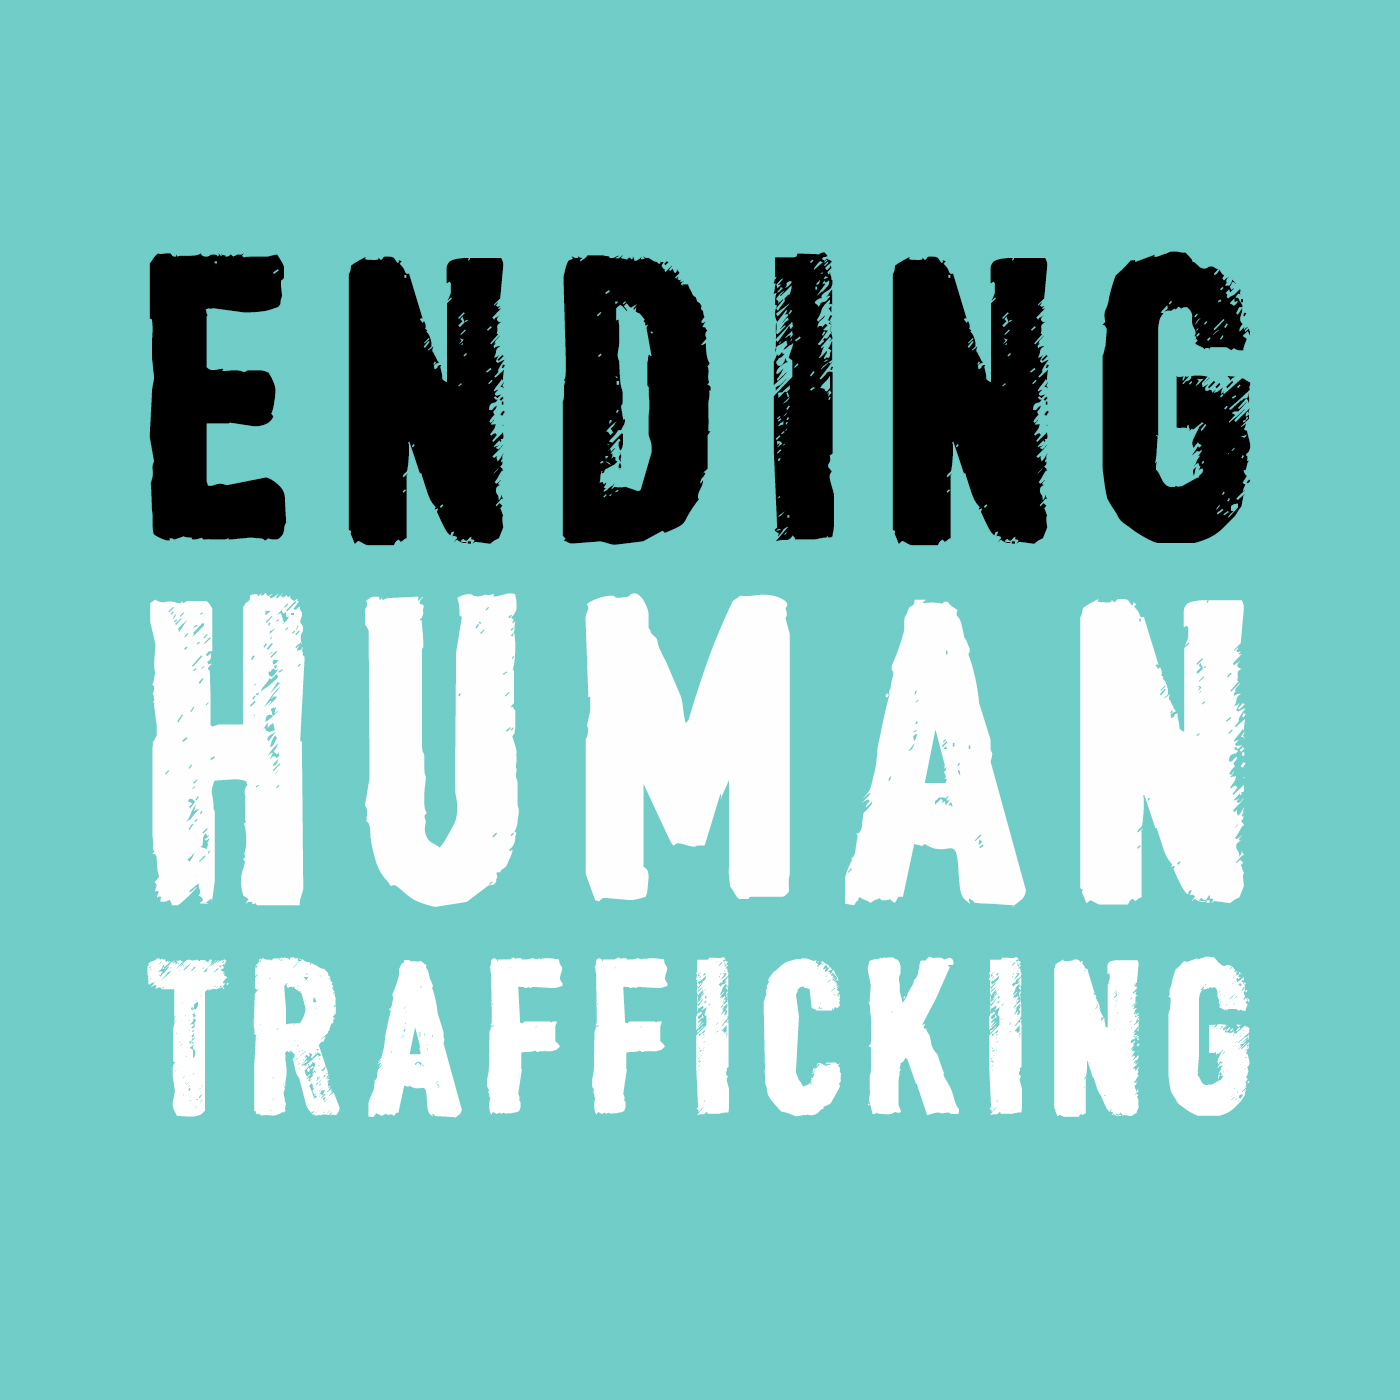 247  Perspectives on Transformation in Labor Trafficking with Ben Skinner - burst 2